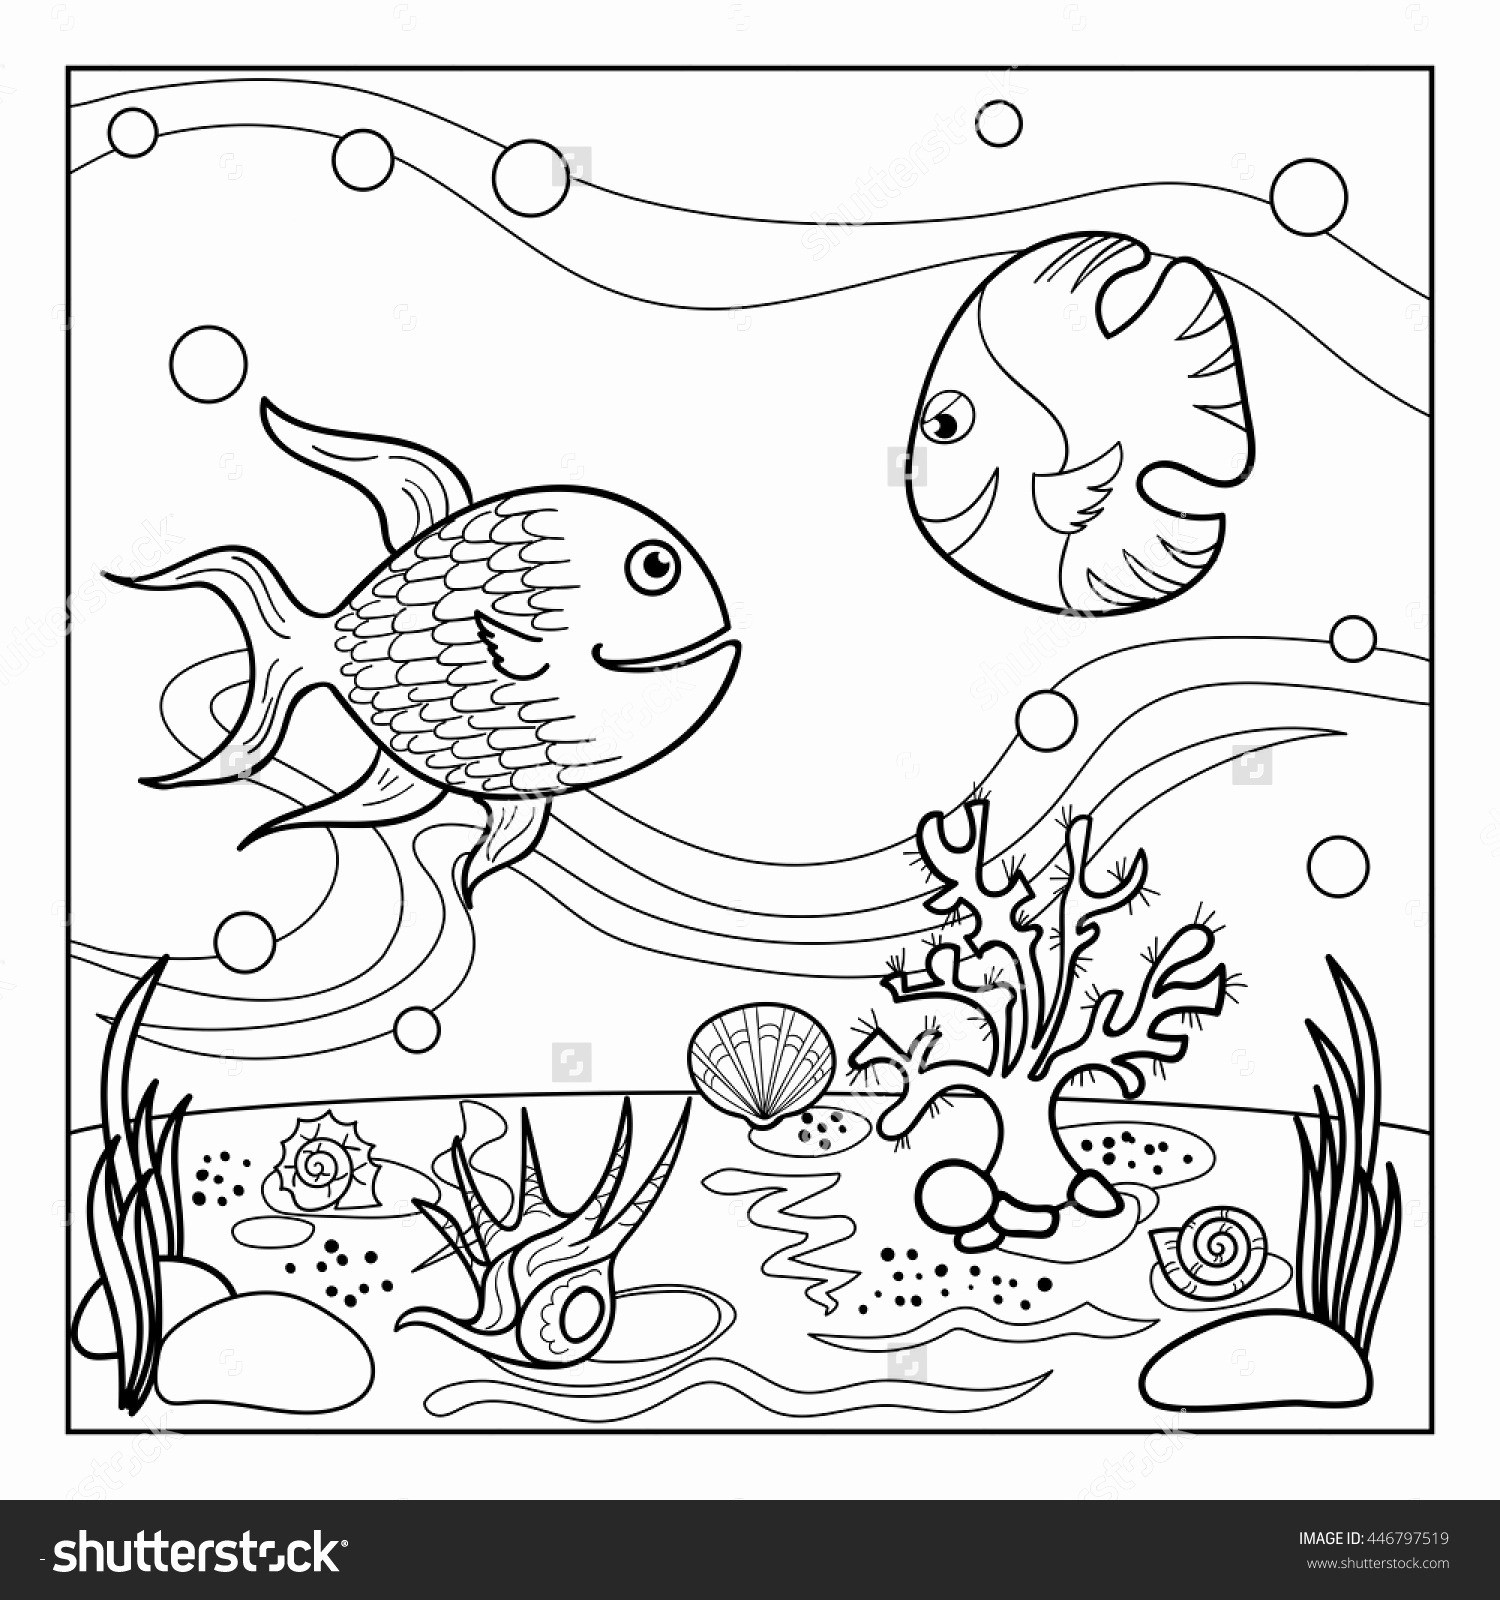 Link Coloring Pages  Download 15j - Free For kids